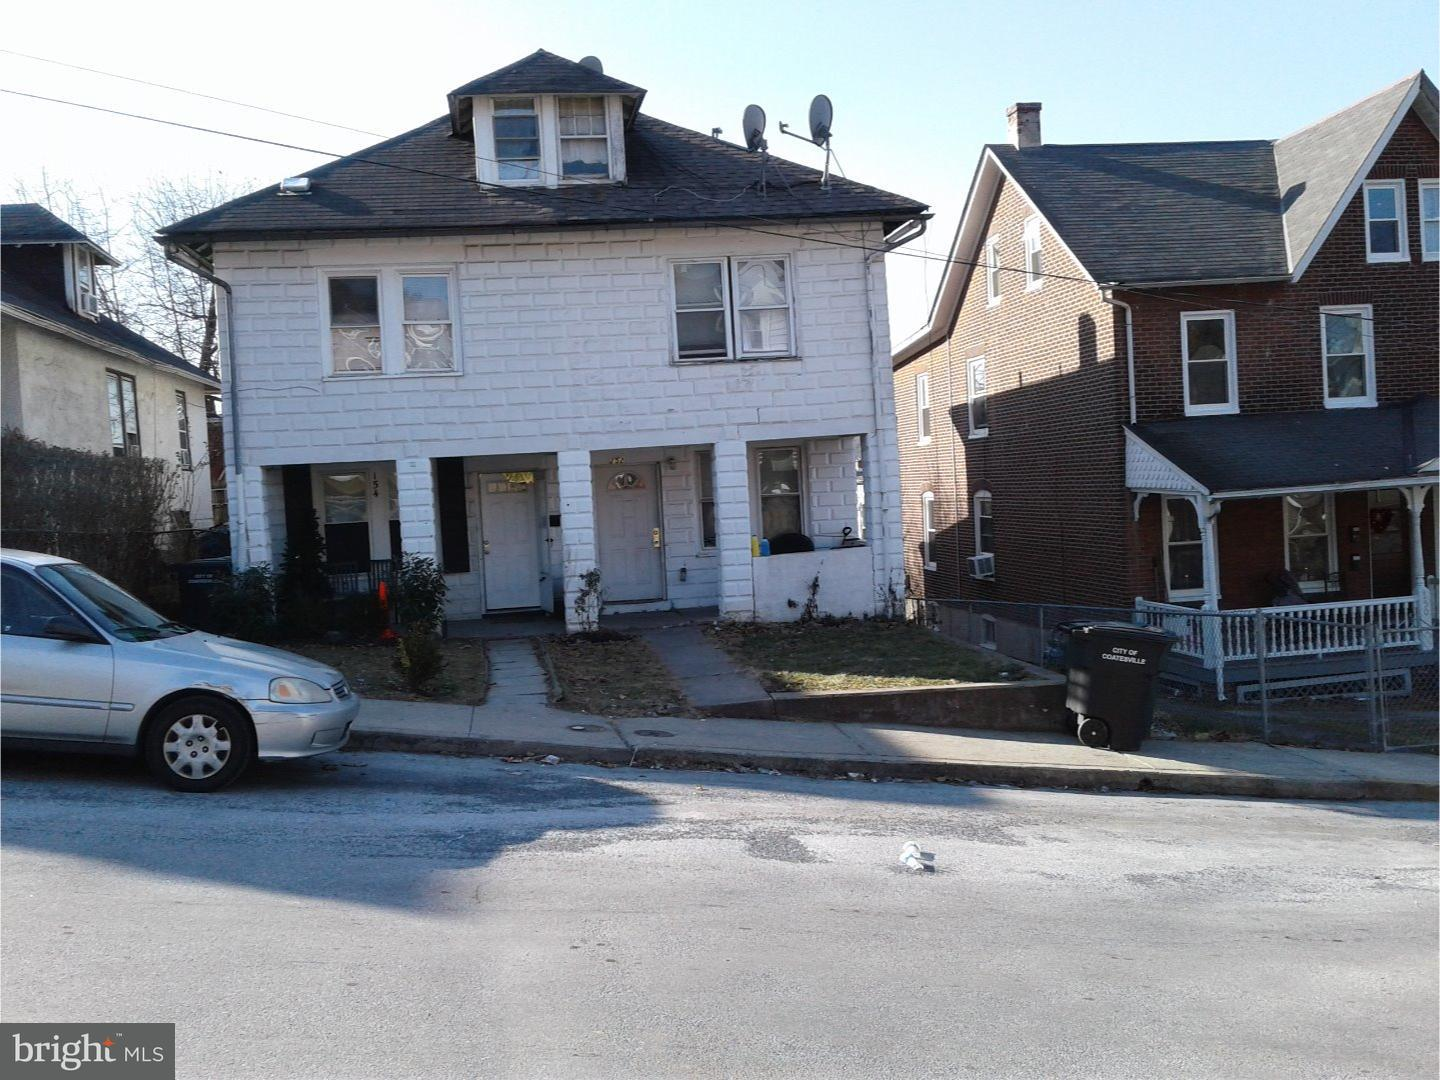 152 S 4TH AVE, COATESVILLE - Listed at $86,000, COATESVILLE